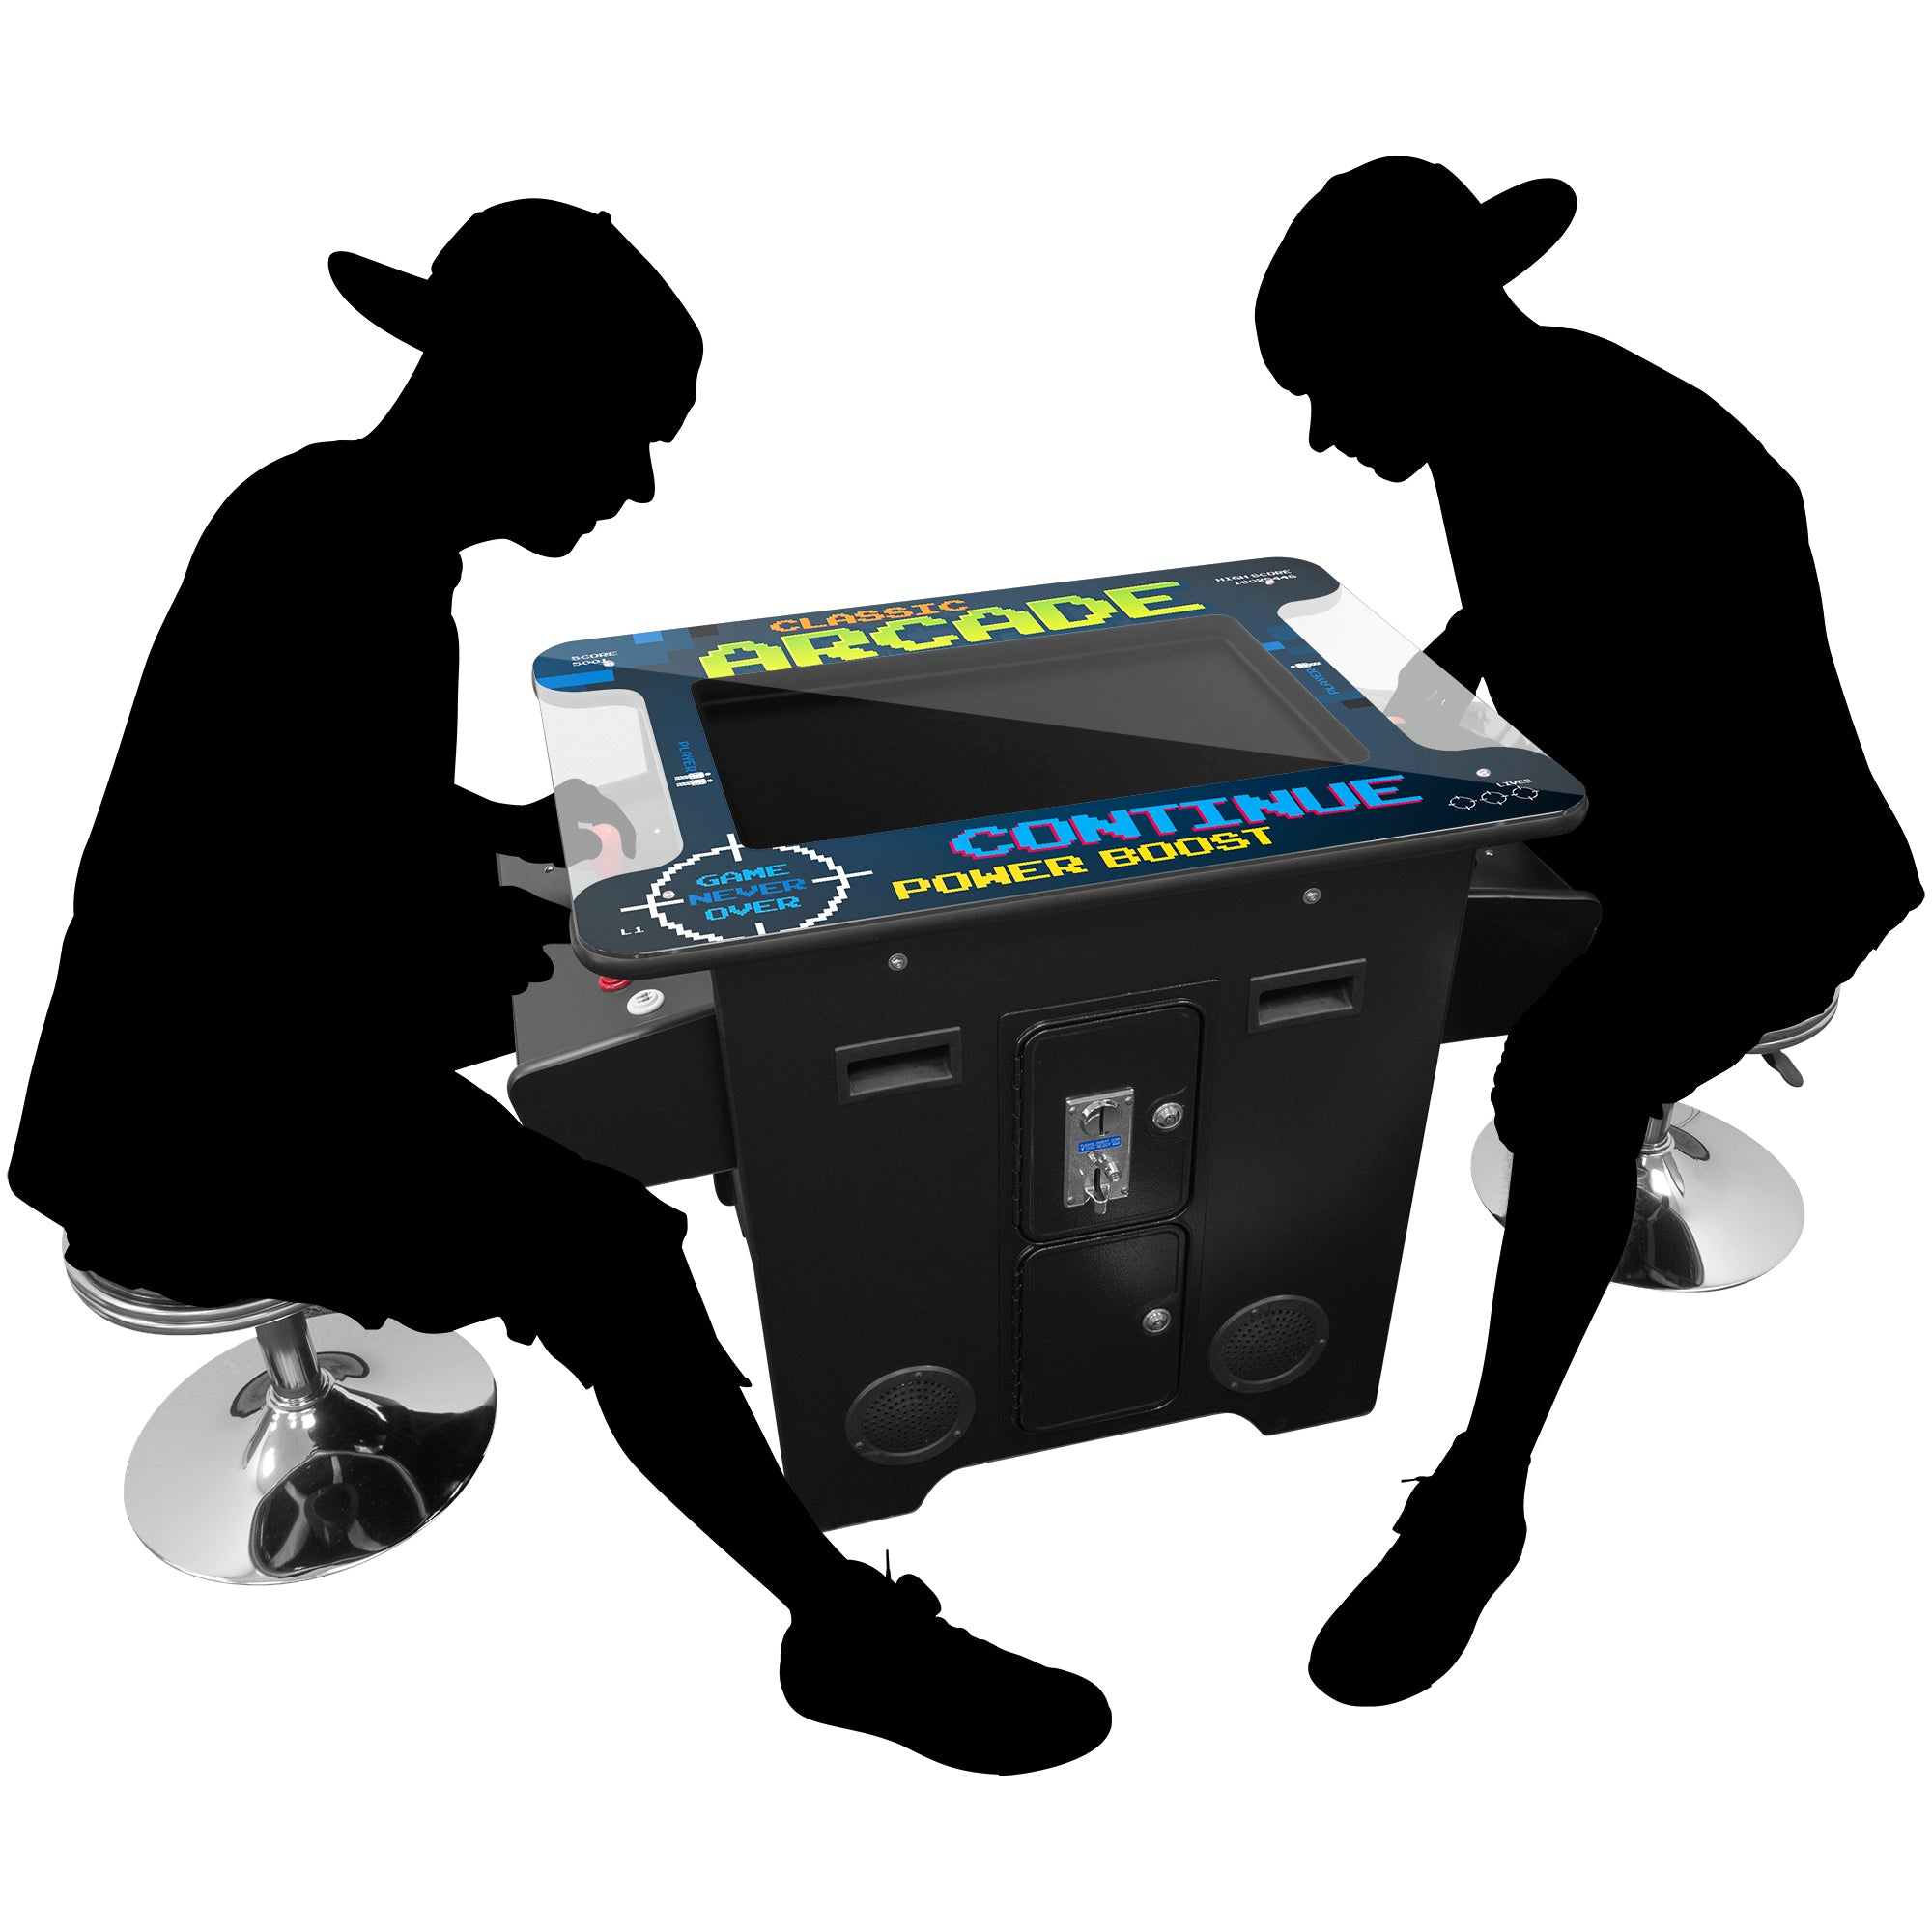 "2 Player Cocktail Arcade with Trackball | 60-412 Games | 26"" LCD Monitor 